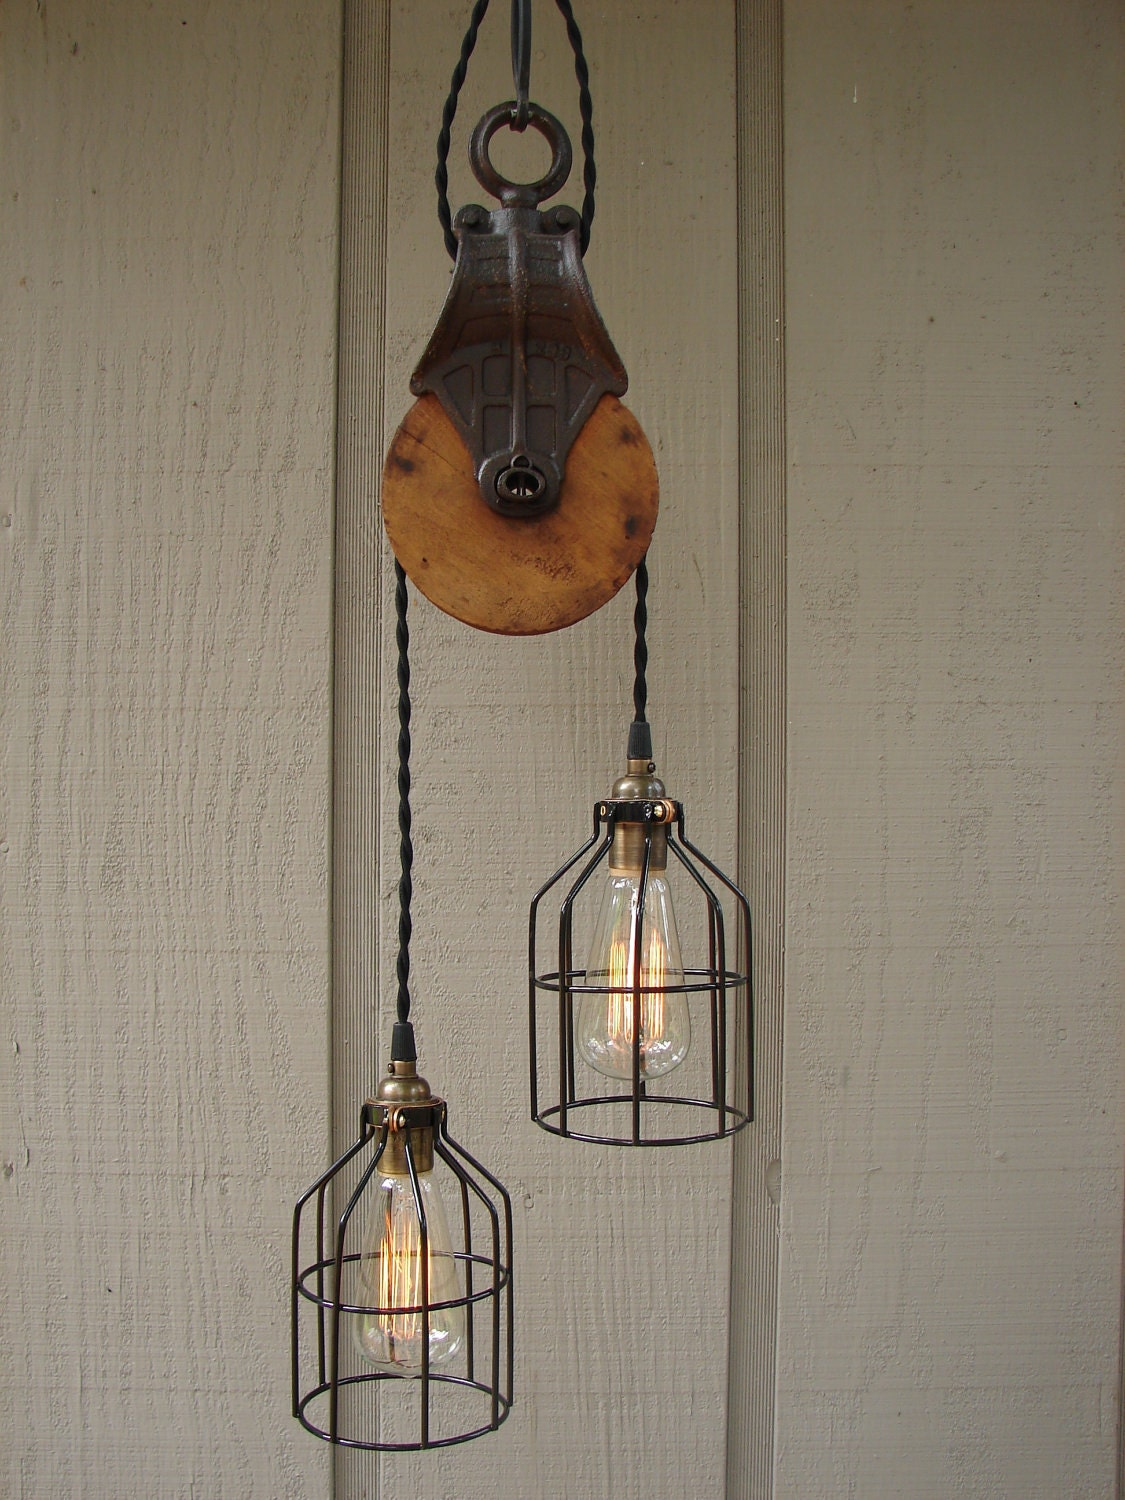 Upcycled Farm Pulley Lighting Pendant With Bulb Cages